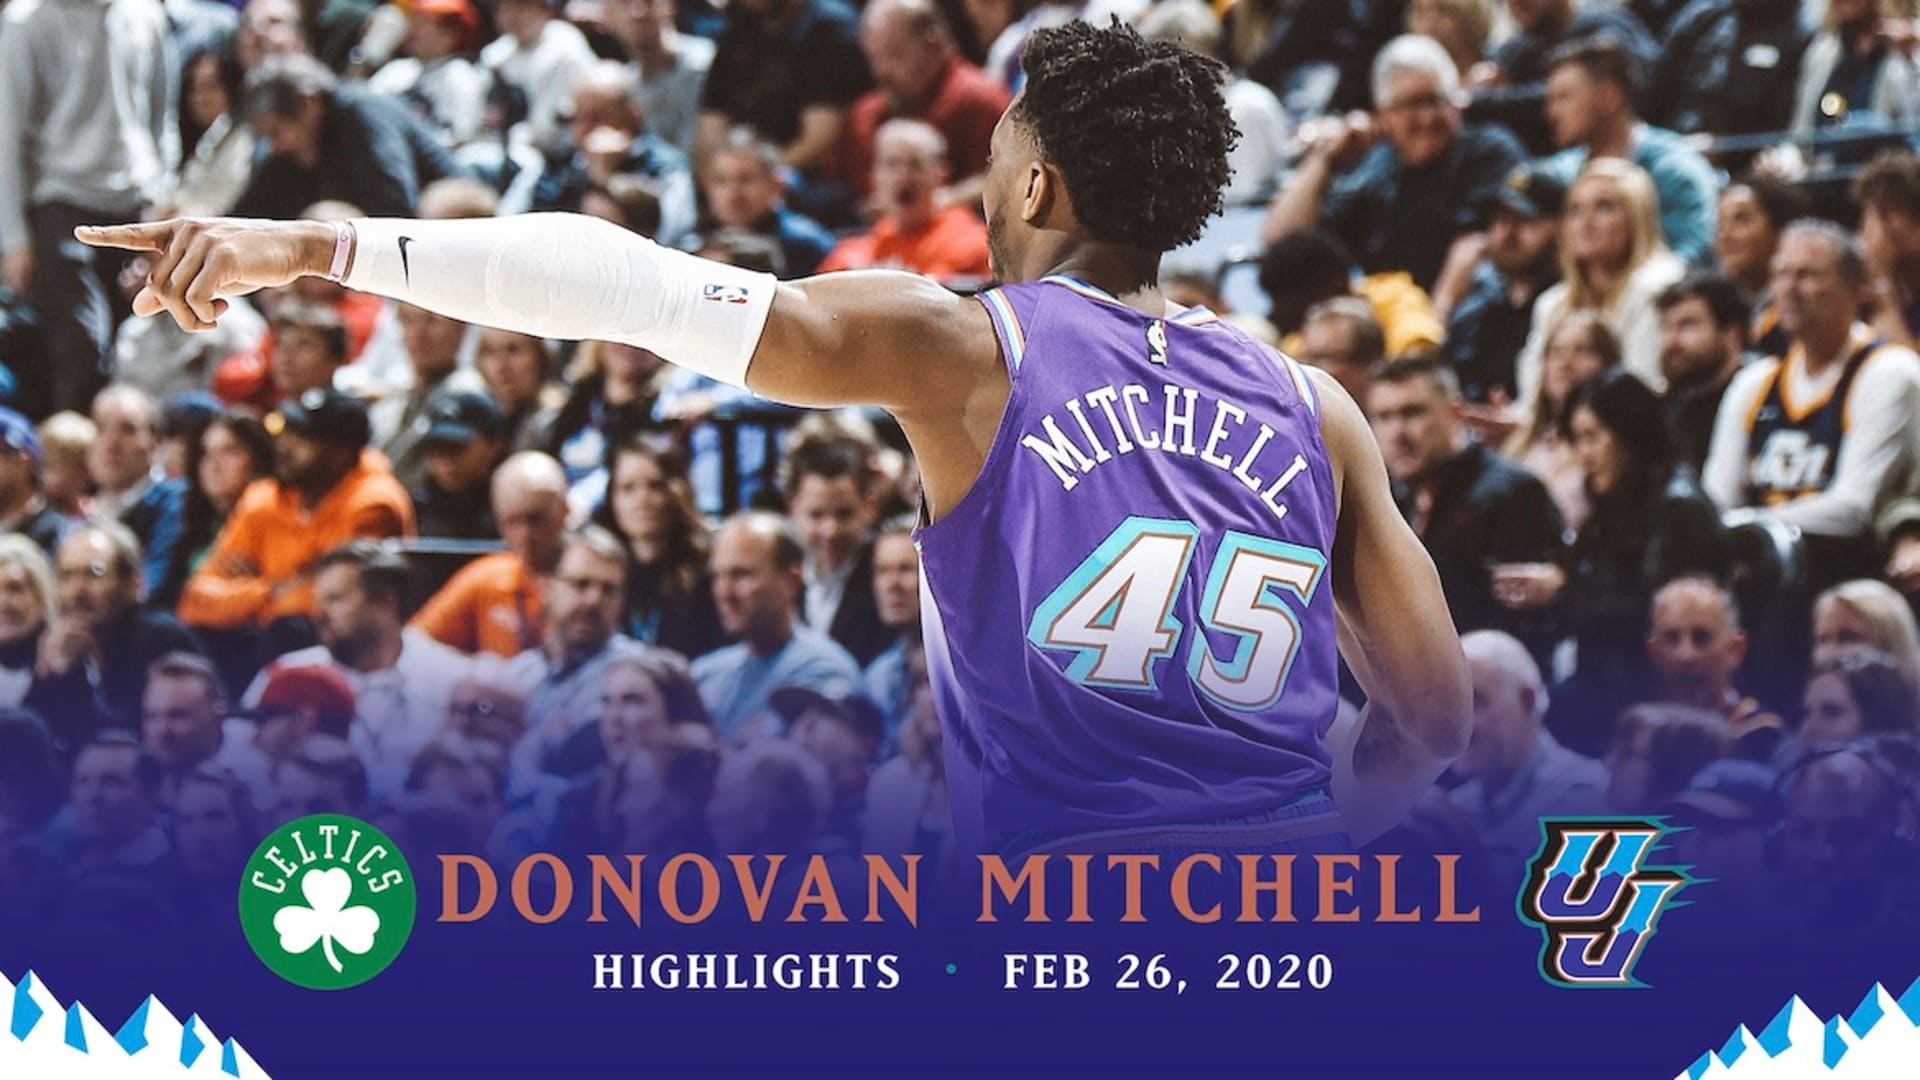 Highlights: Donovan Mitchell — 37 points, 2 3-pointers